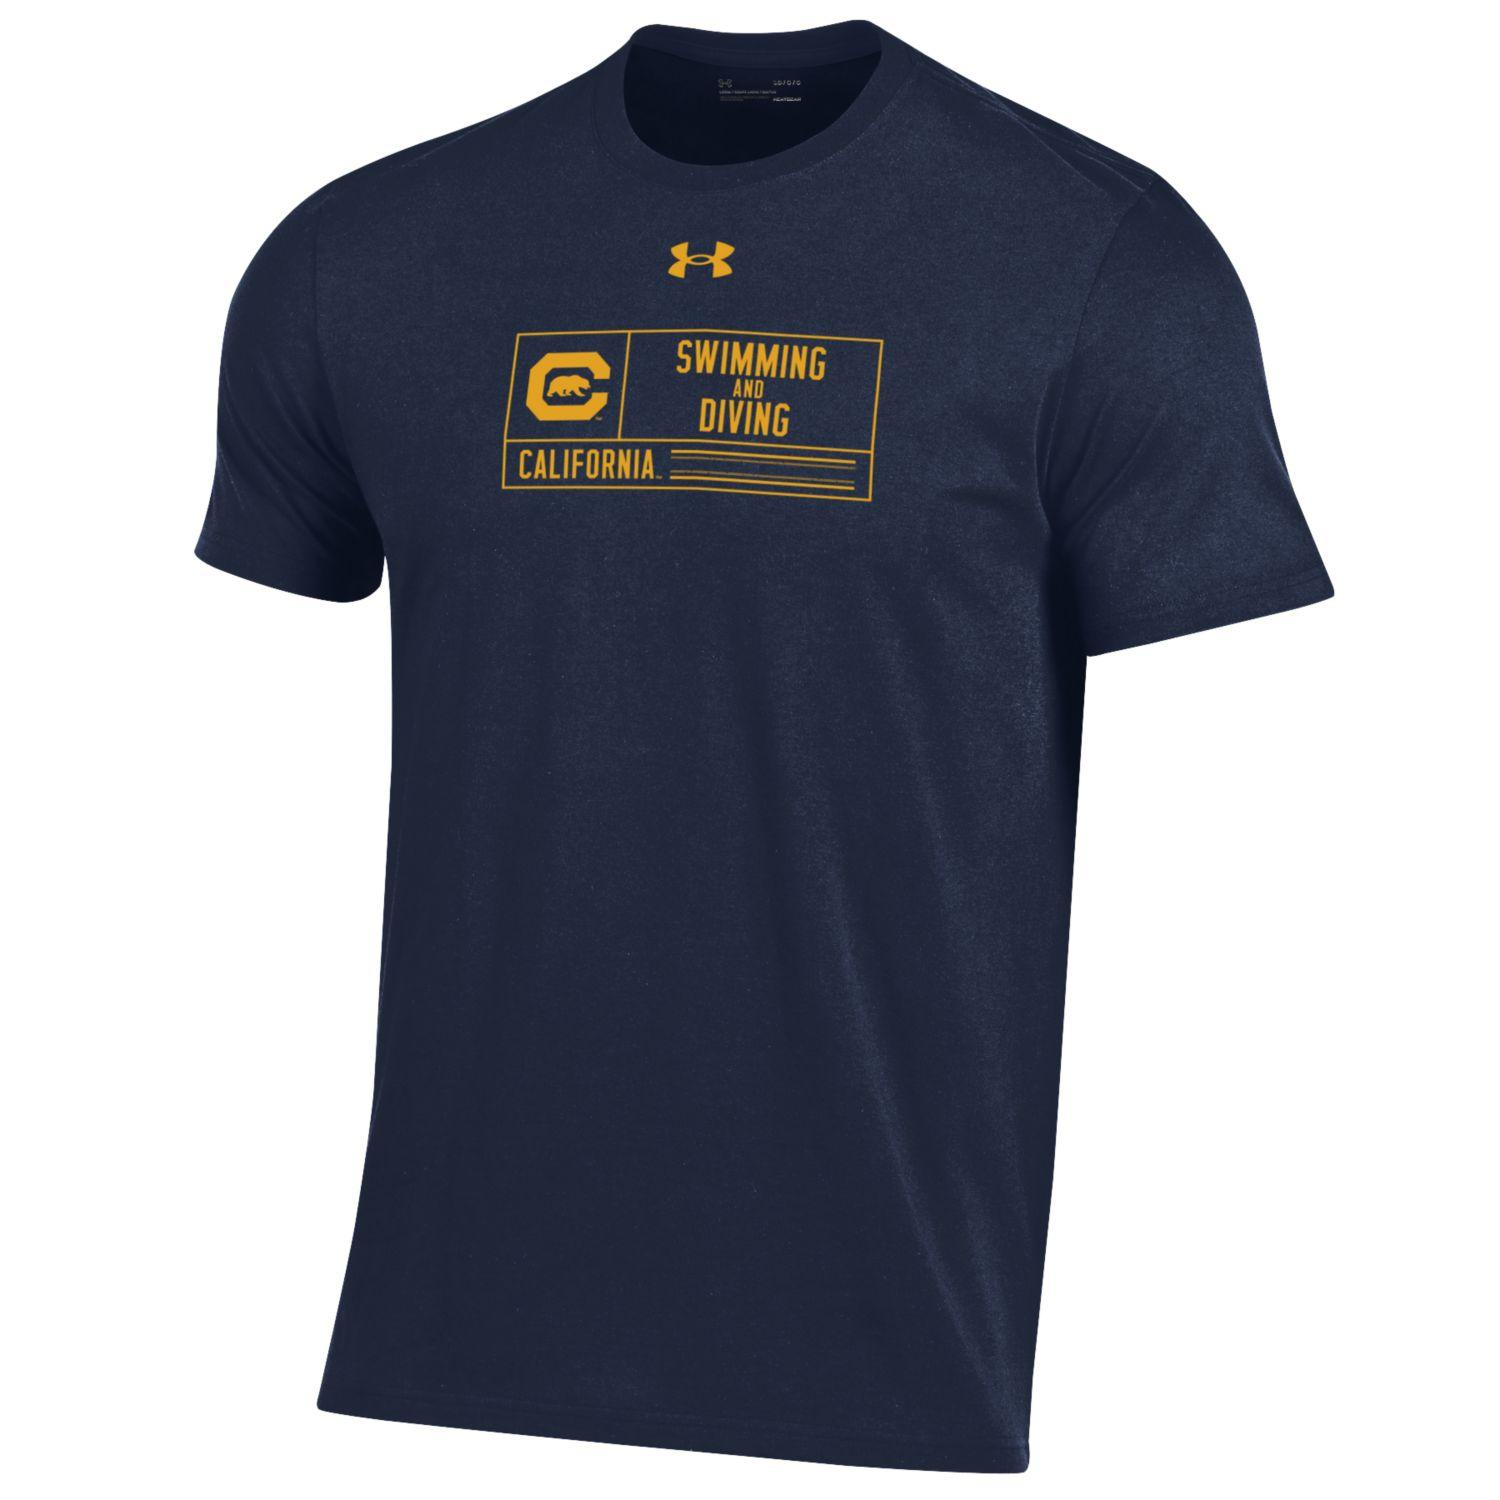 Cal Bears UA M Performance Cotton SS Swimming & Diving Tee